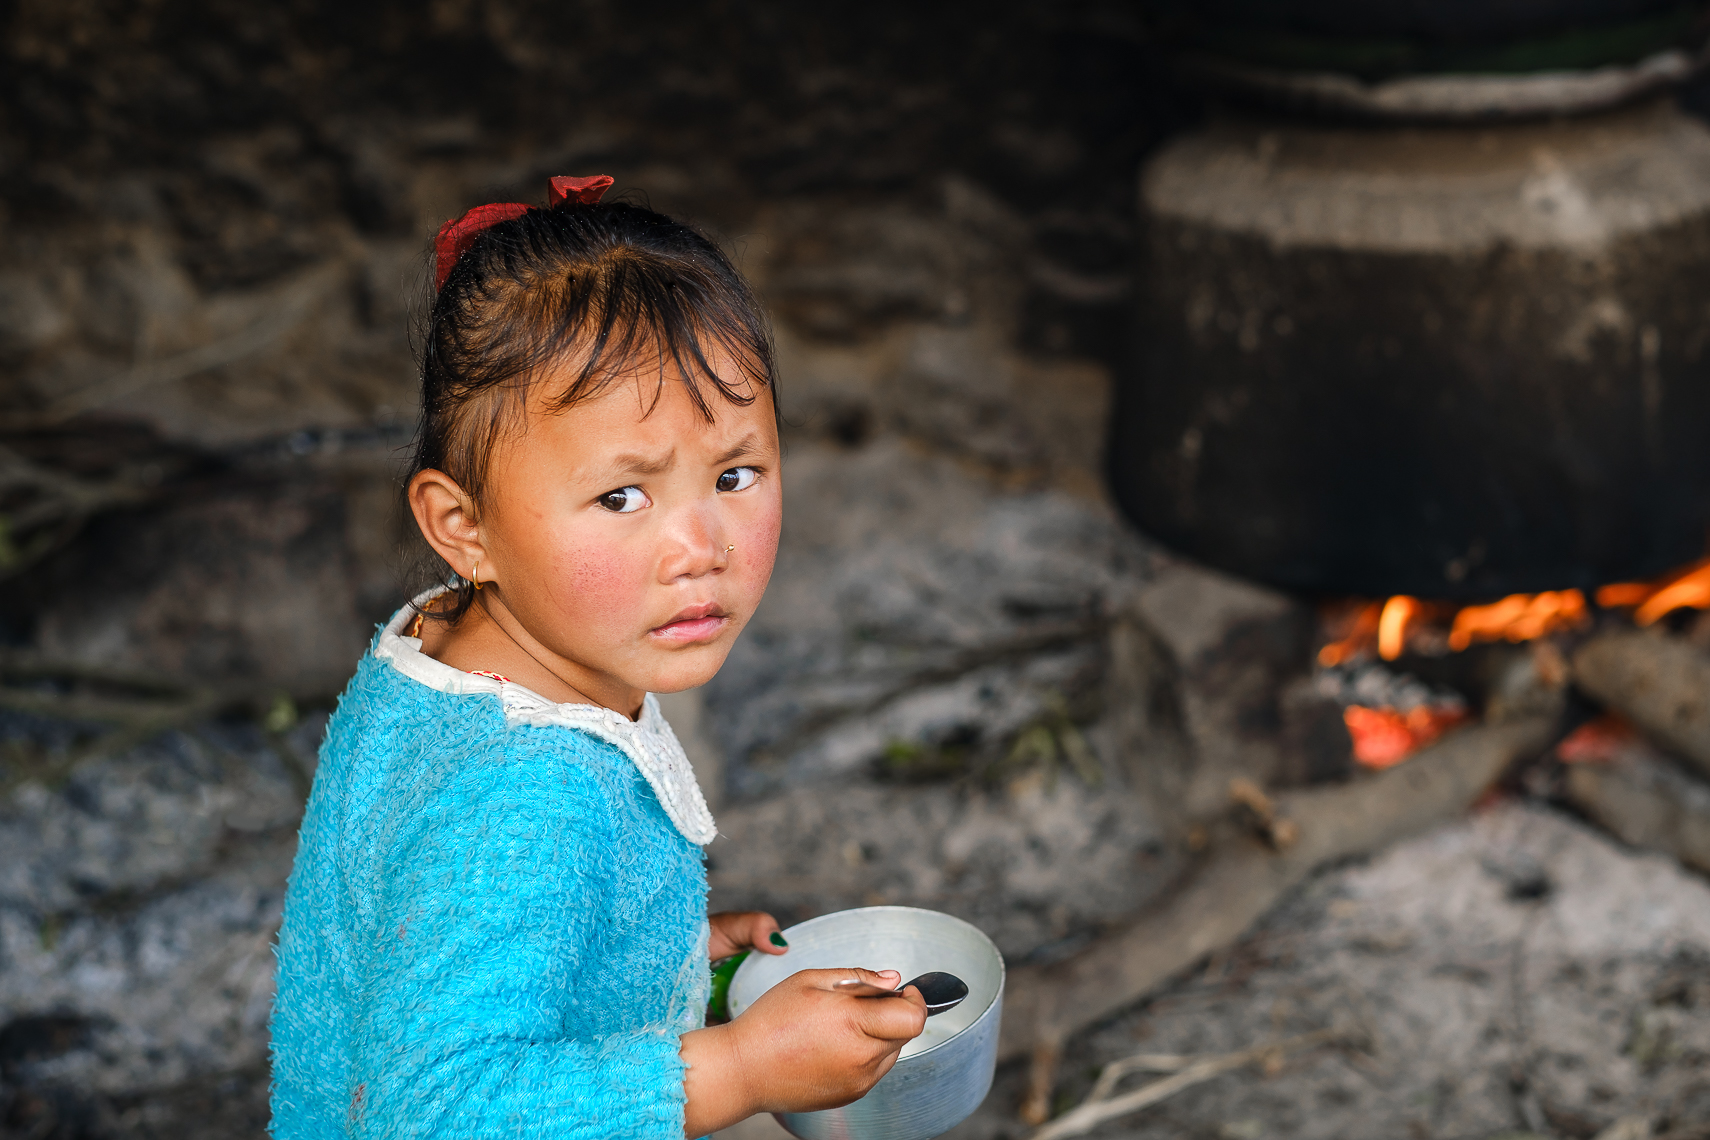 CURIOUS EYES, NAGARKOT, NEPAL